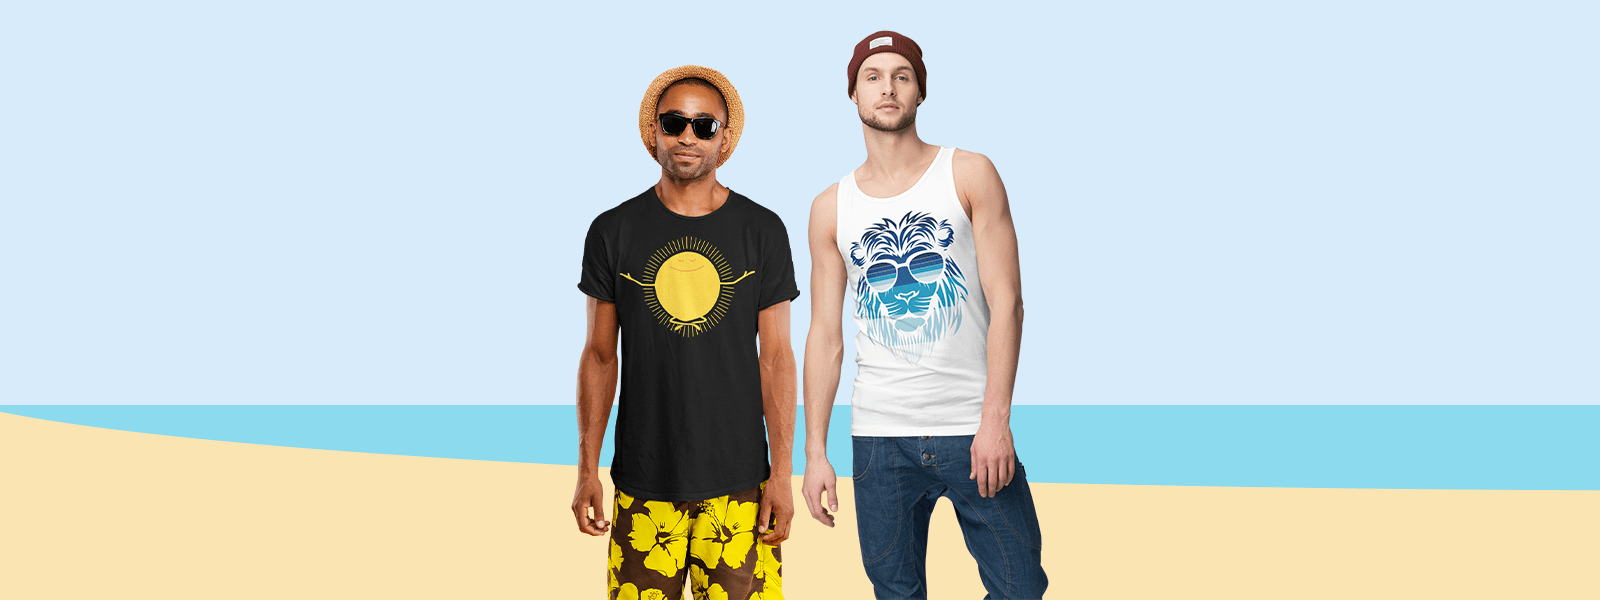 Top 10 Spring Break Outfit Ideas for College Break 2021